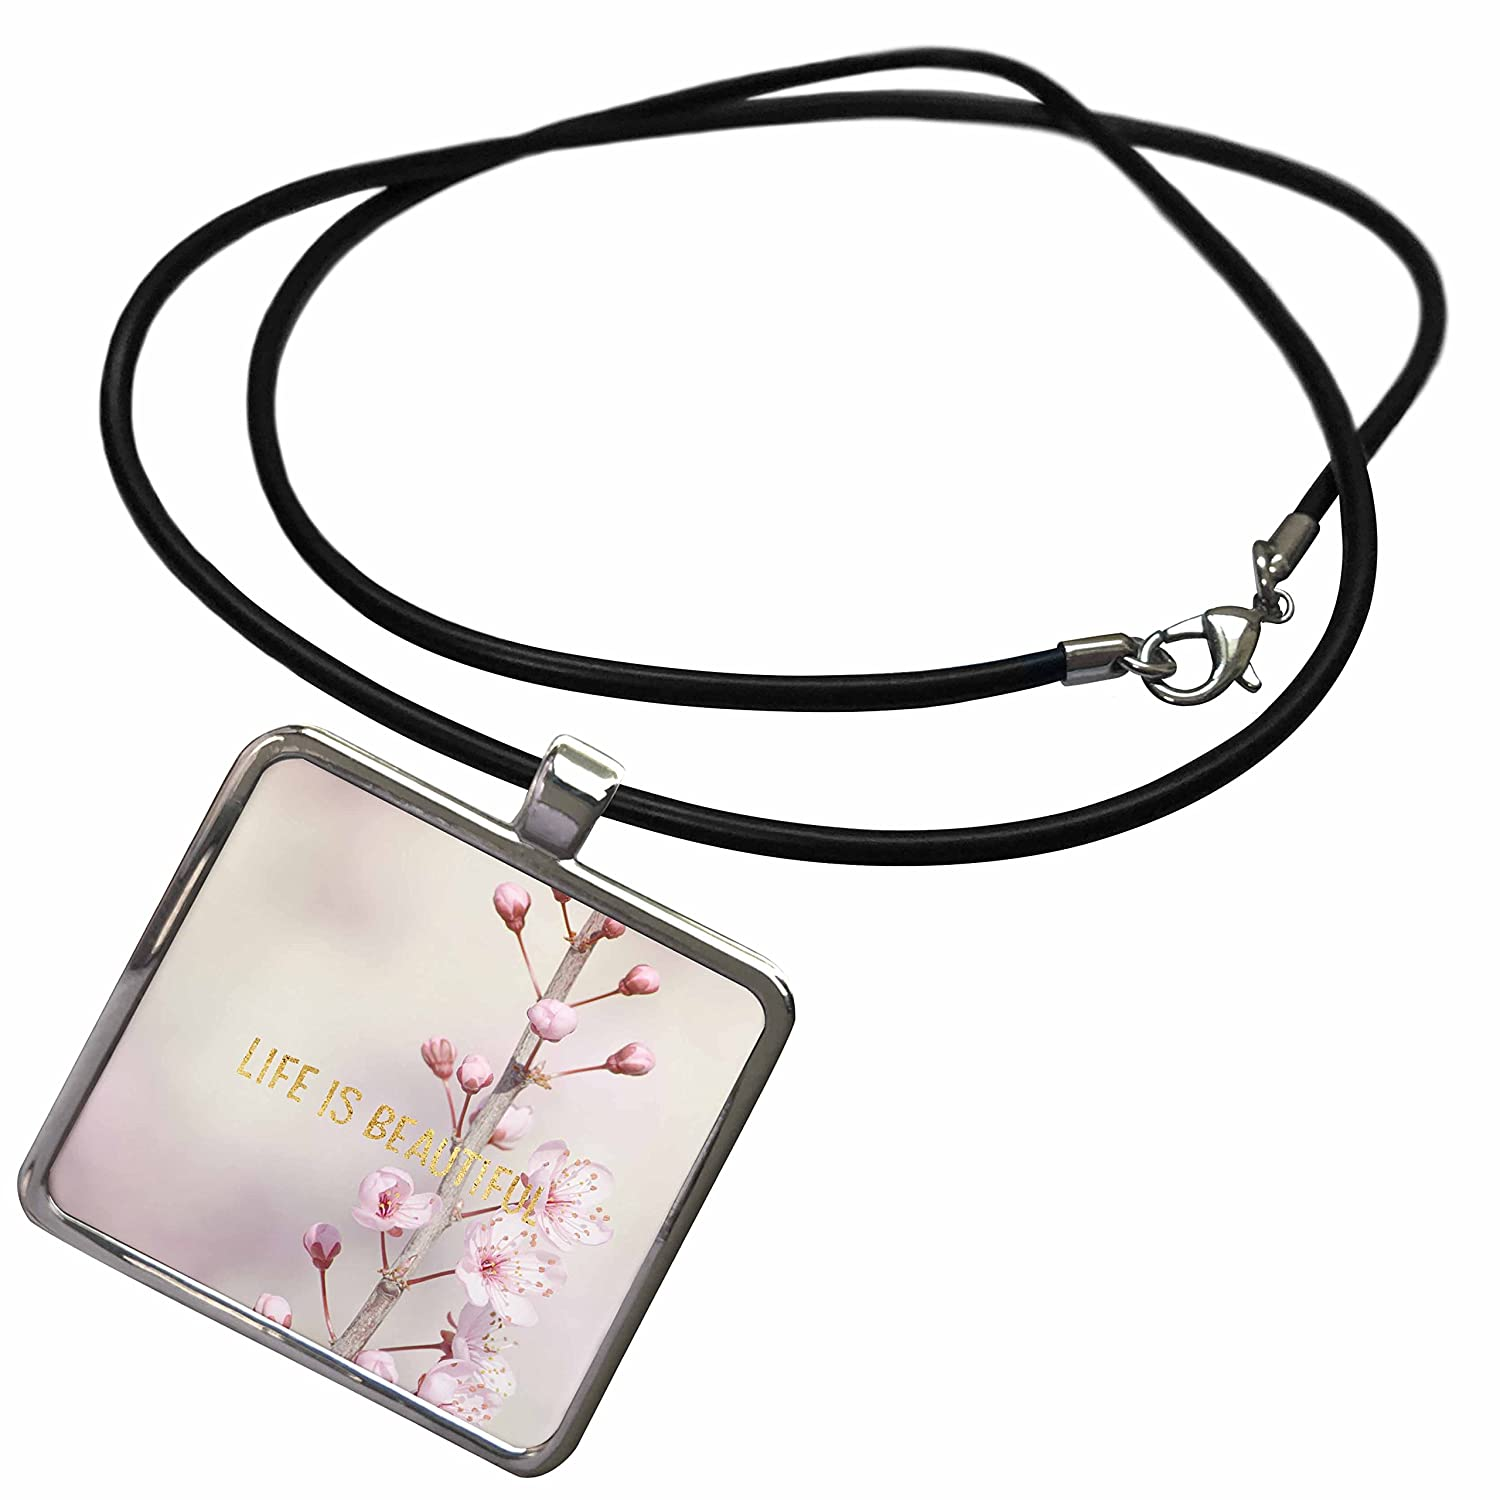 f1bc78c50 Amazon.com: 3dRose PS Inspiration - Image of Gold Life is Beautiful Cherry  Blossom Flowers - Necklace With Rectangle Pendant (ncl_274250_1): Jewelry